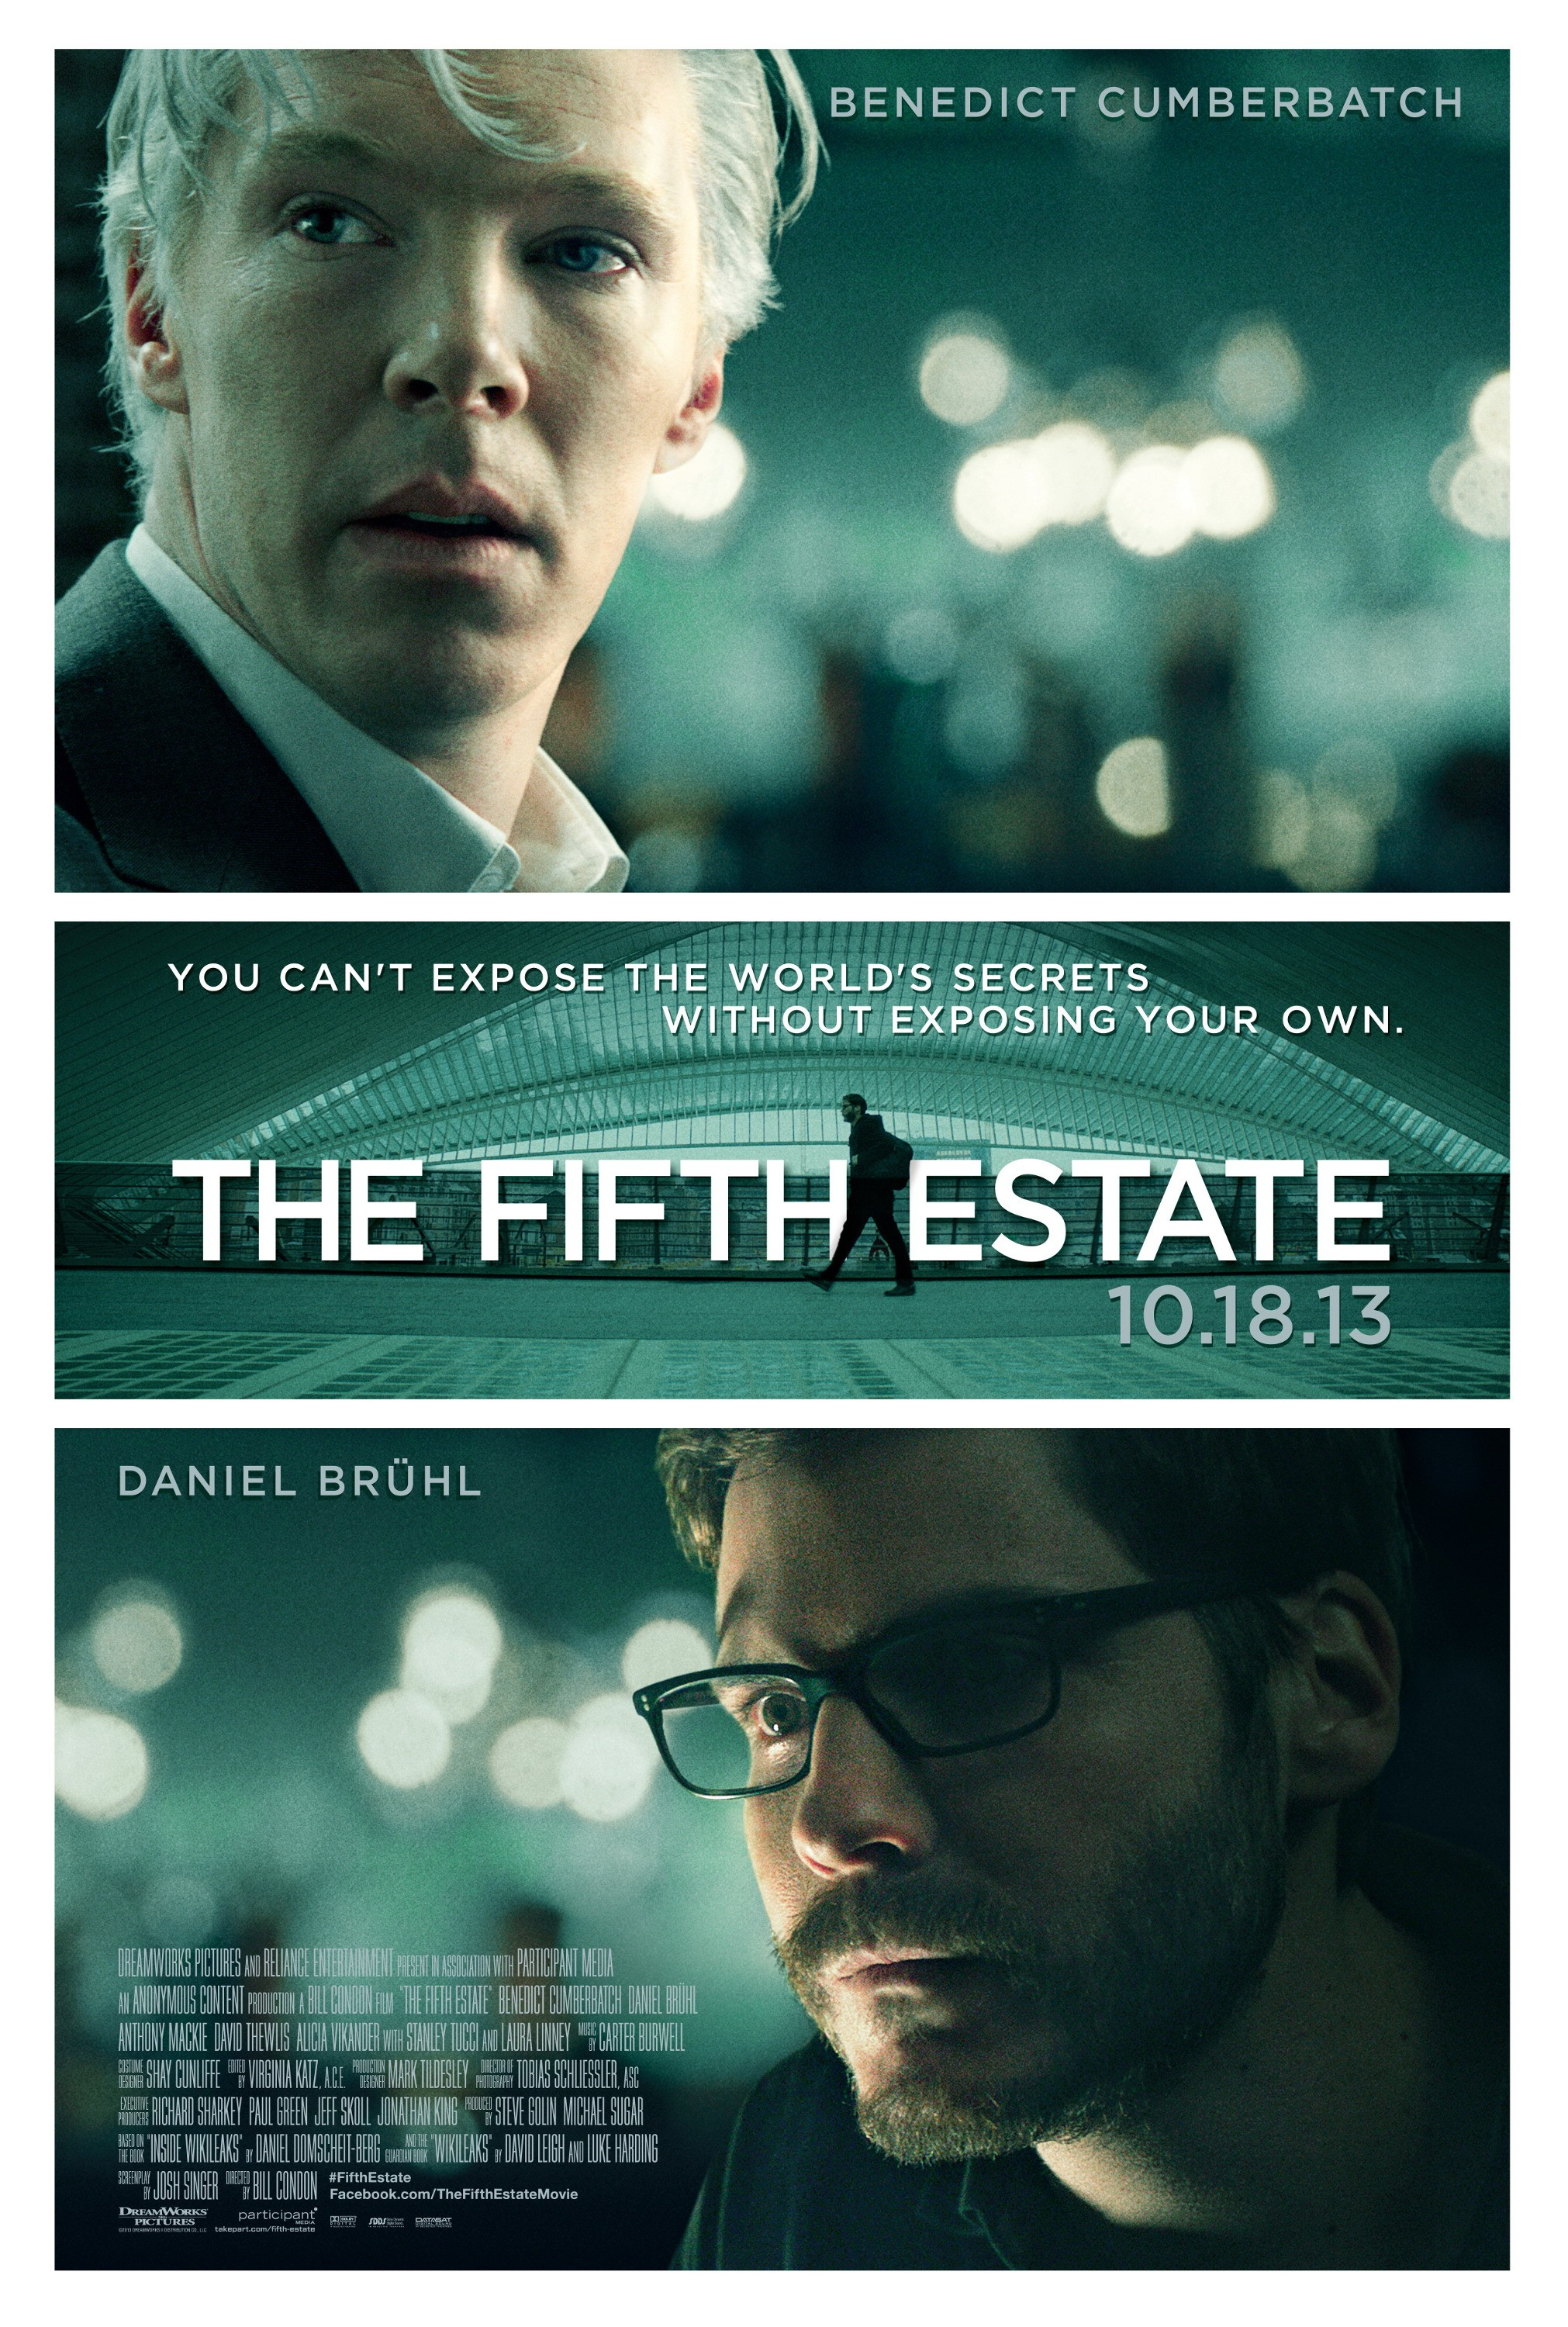 The Fifth Estate-Official Poster Banner PROMO POSTER-20AGOSTO2013